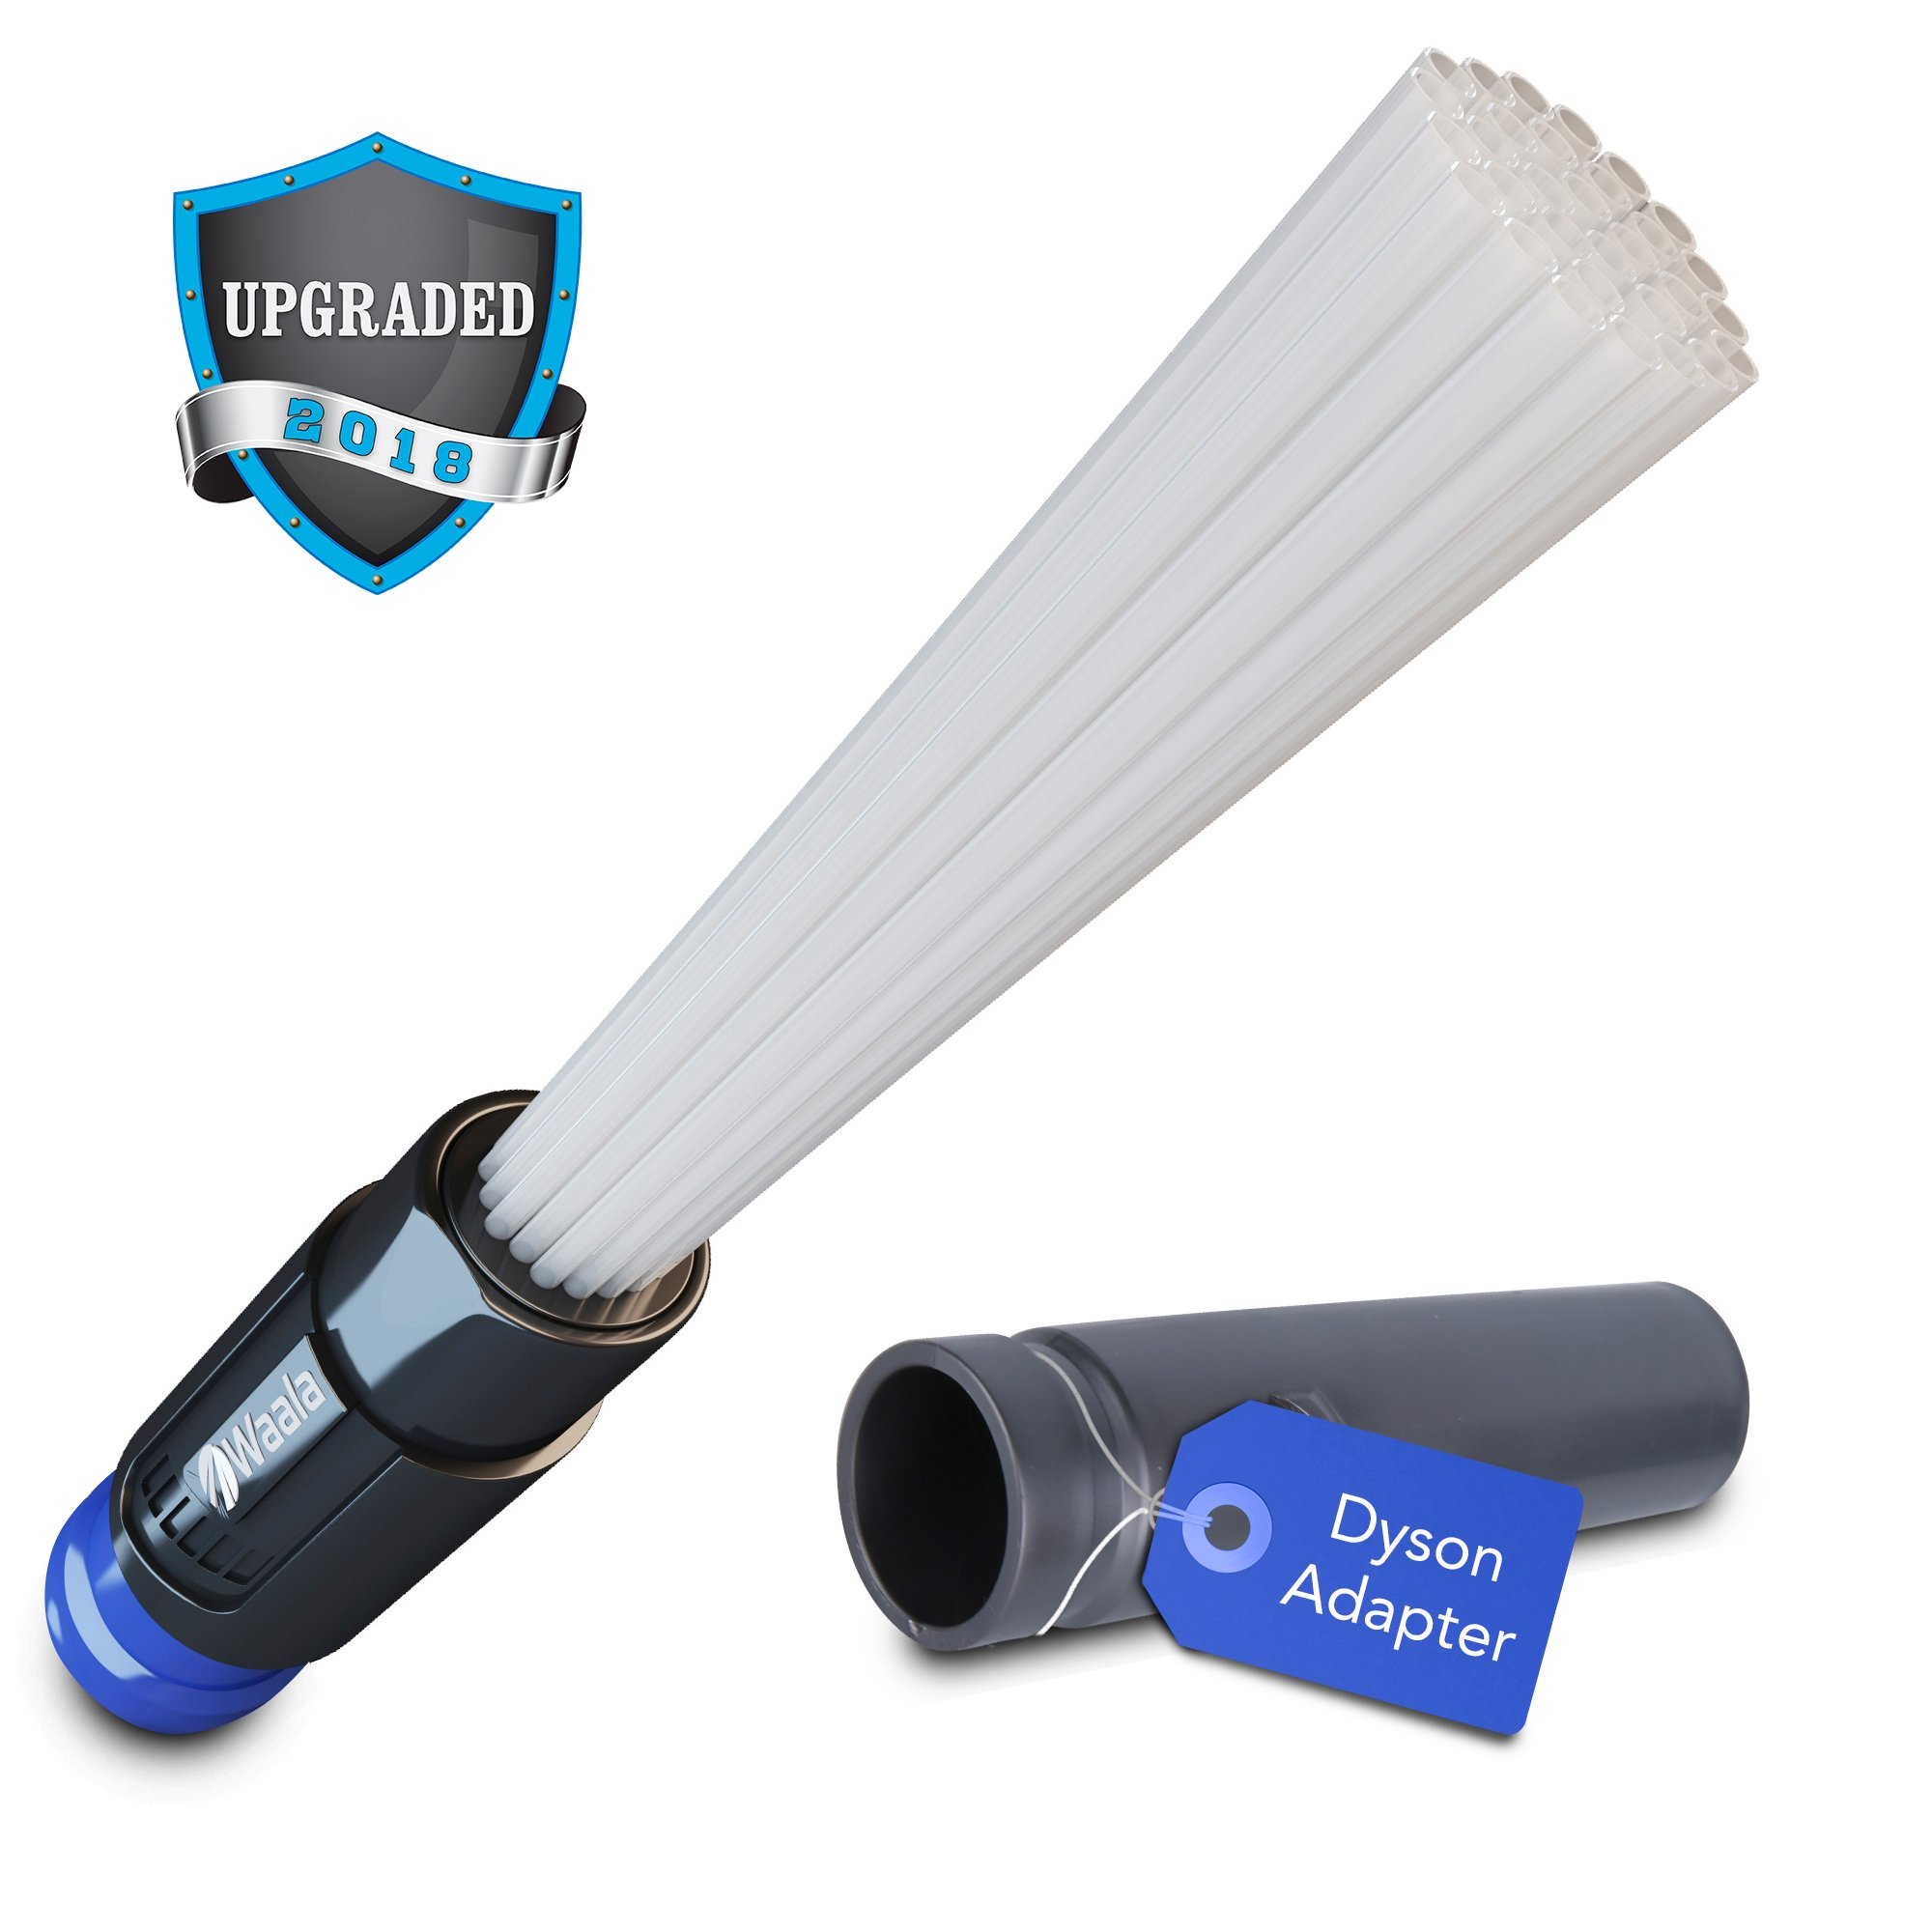 Dust Pro Cleaner, Vacuum Attachment, Vacuum Attachments suitable for Dust Removal, Vent Cleaning, Fan Blades, Keyboards and More by Waala